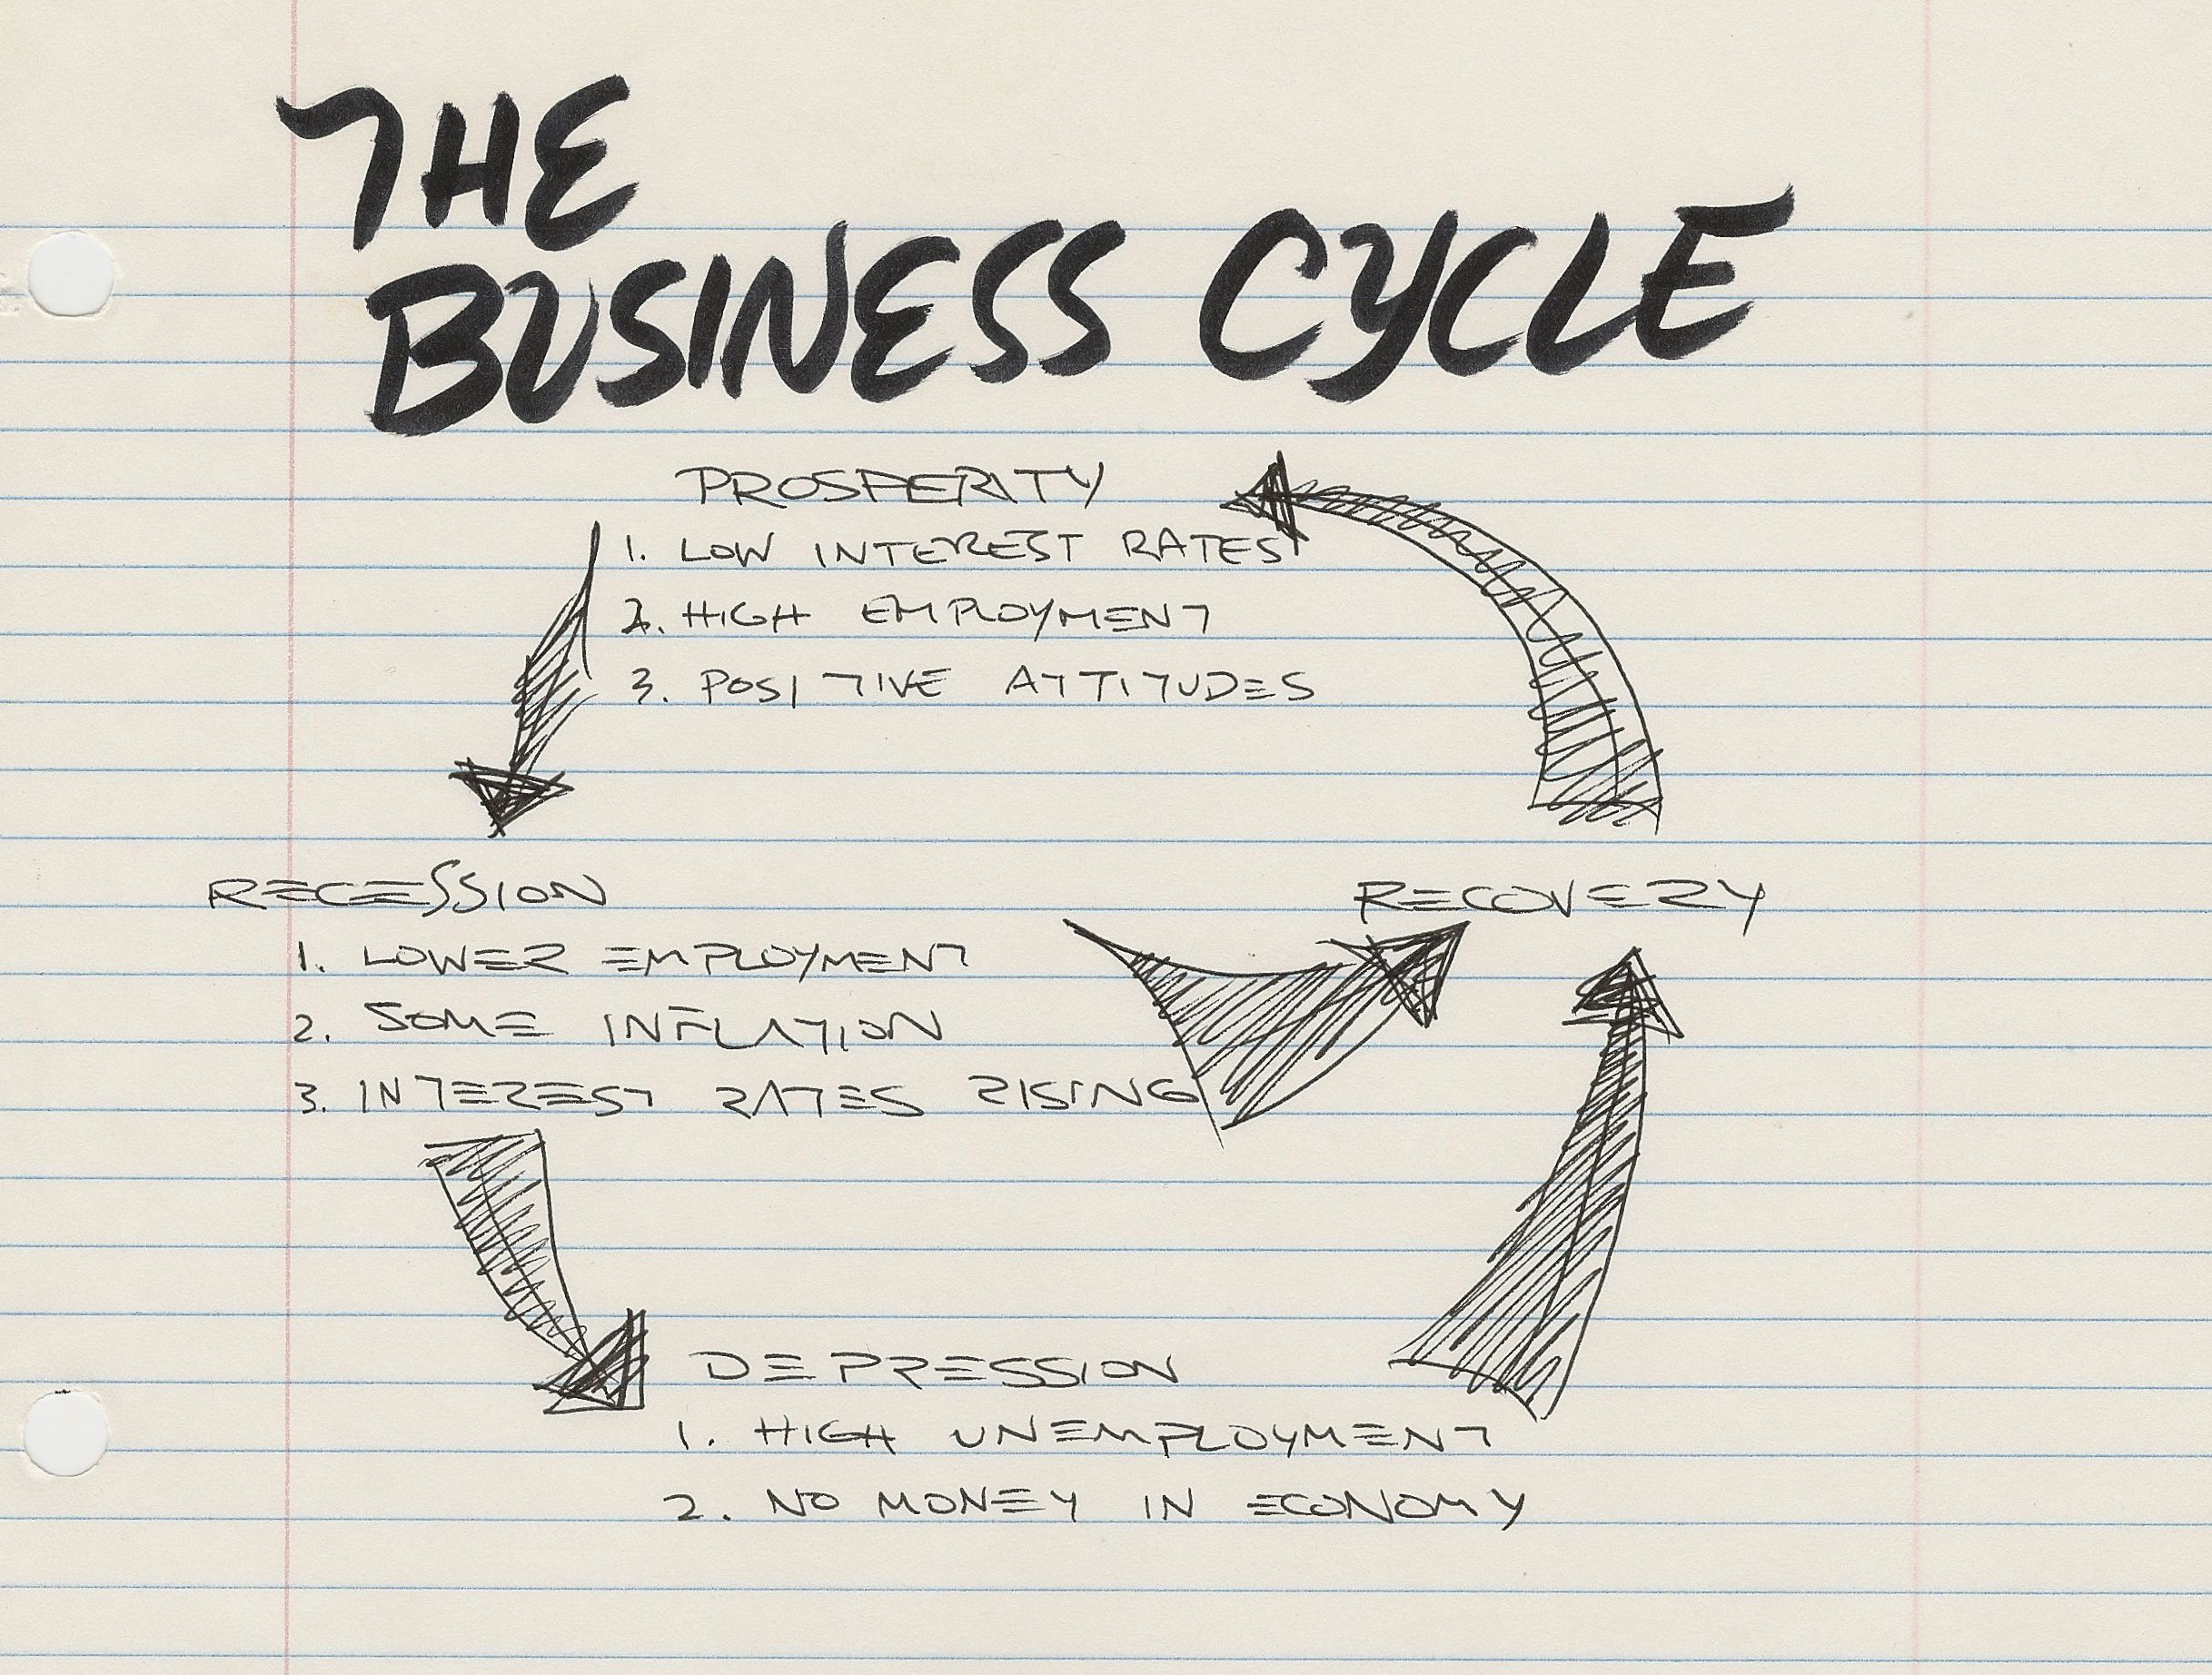 business cycle essay international business essays jellyfish business economic cycle recession depression define explain business cycle studies in economicsbusiness cycle